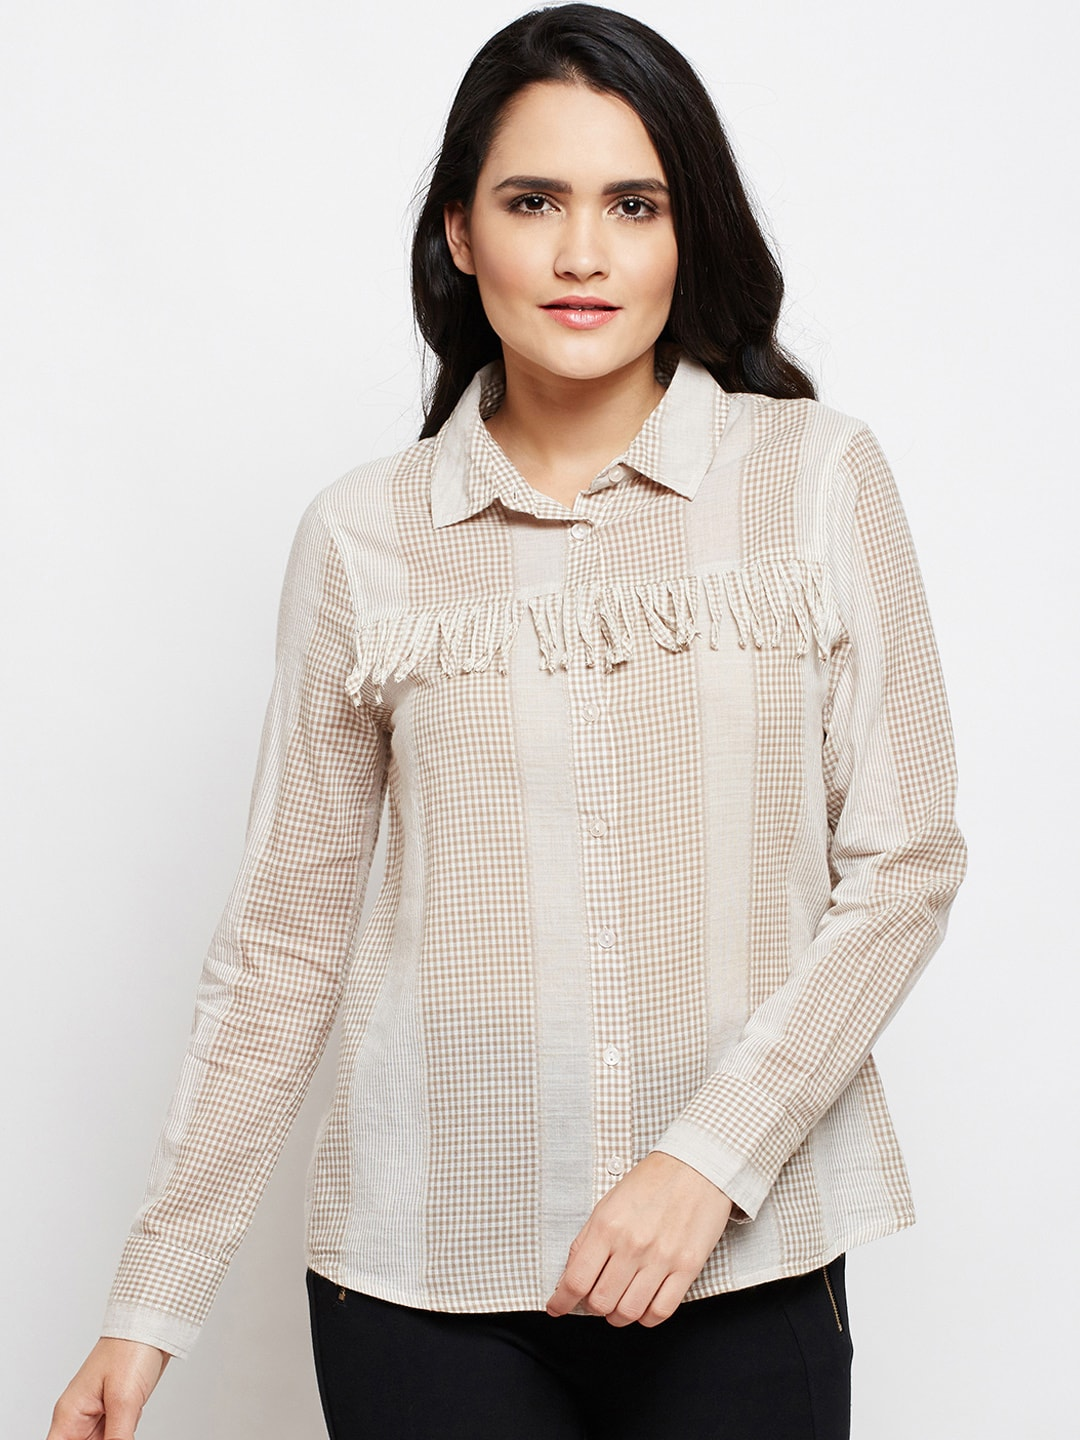 2019 year look- Shirt Casual for ladies